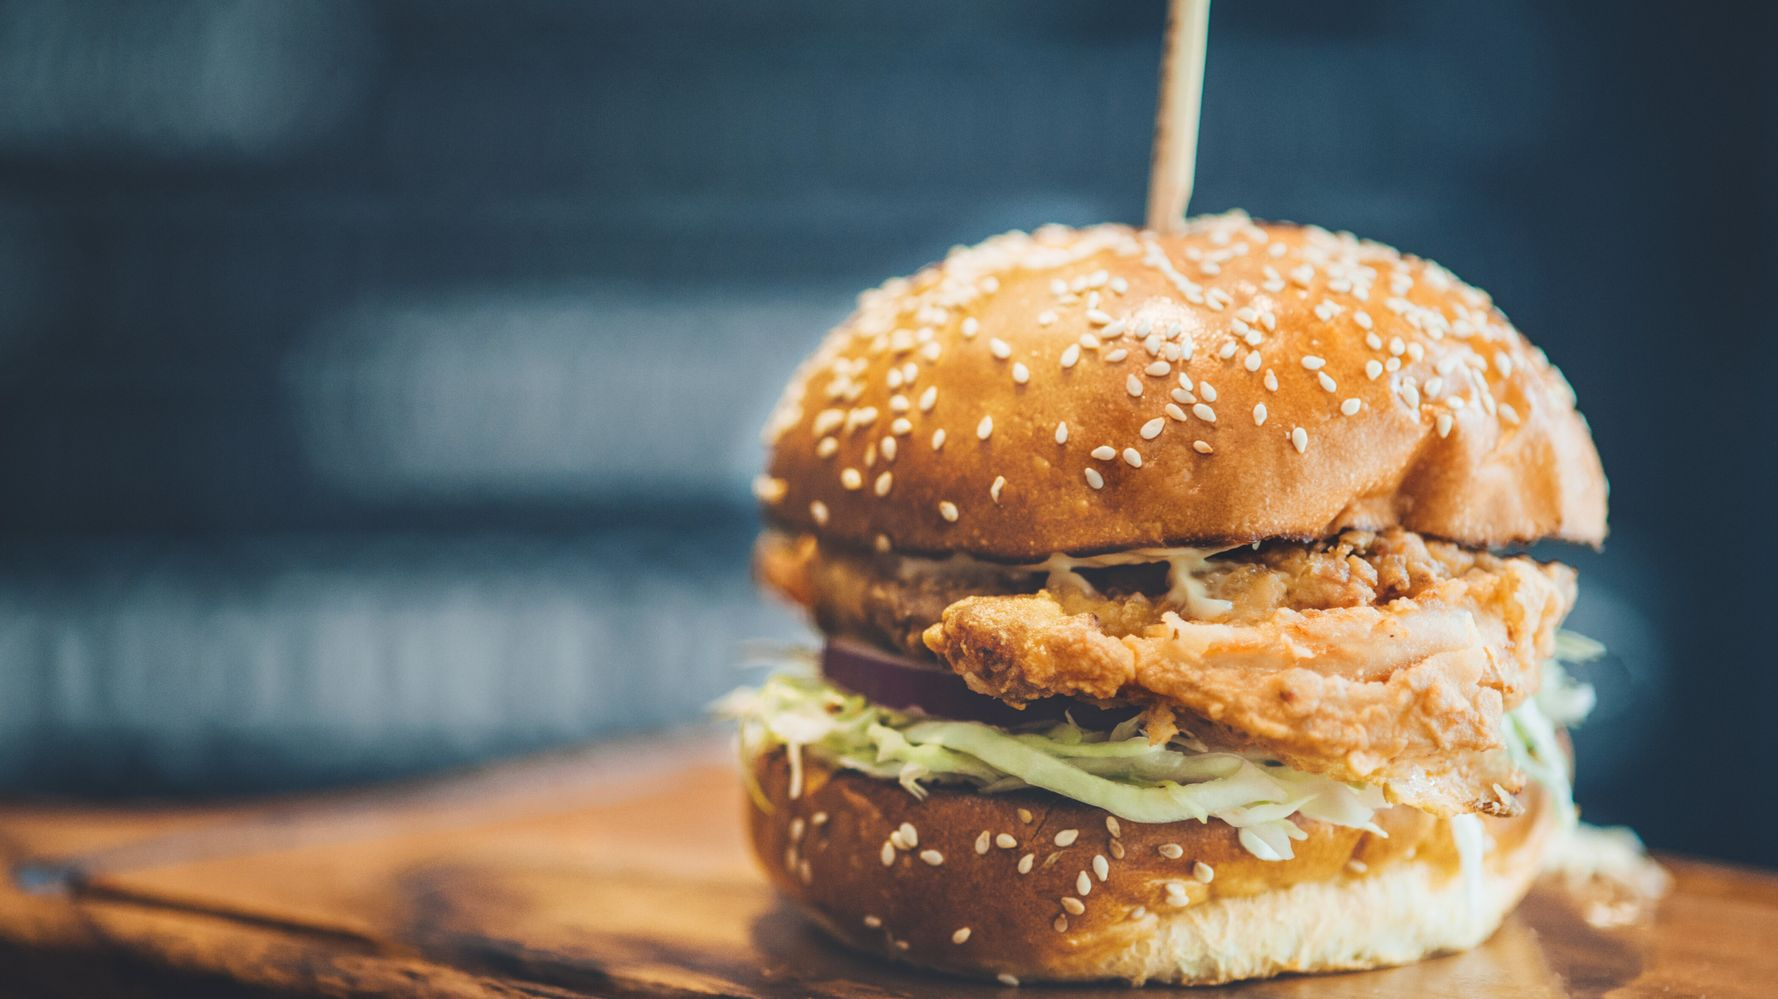 How To Make Seriously Tasty And Easy Fried Chicken Burgers Huffpost Australia Food Drink